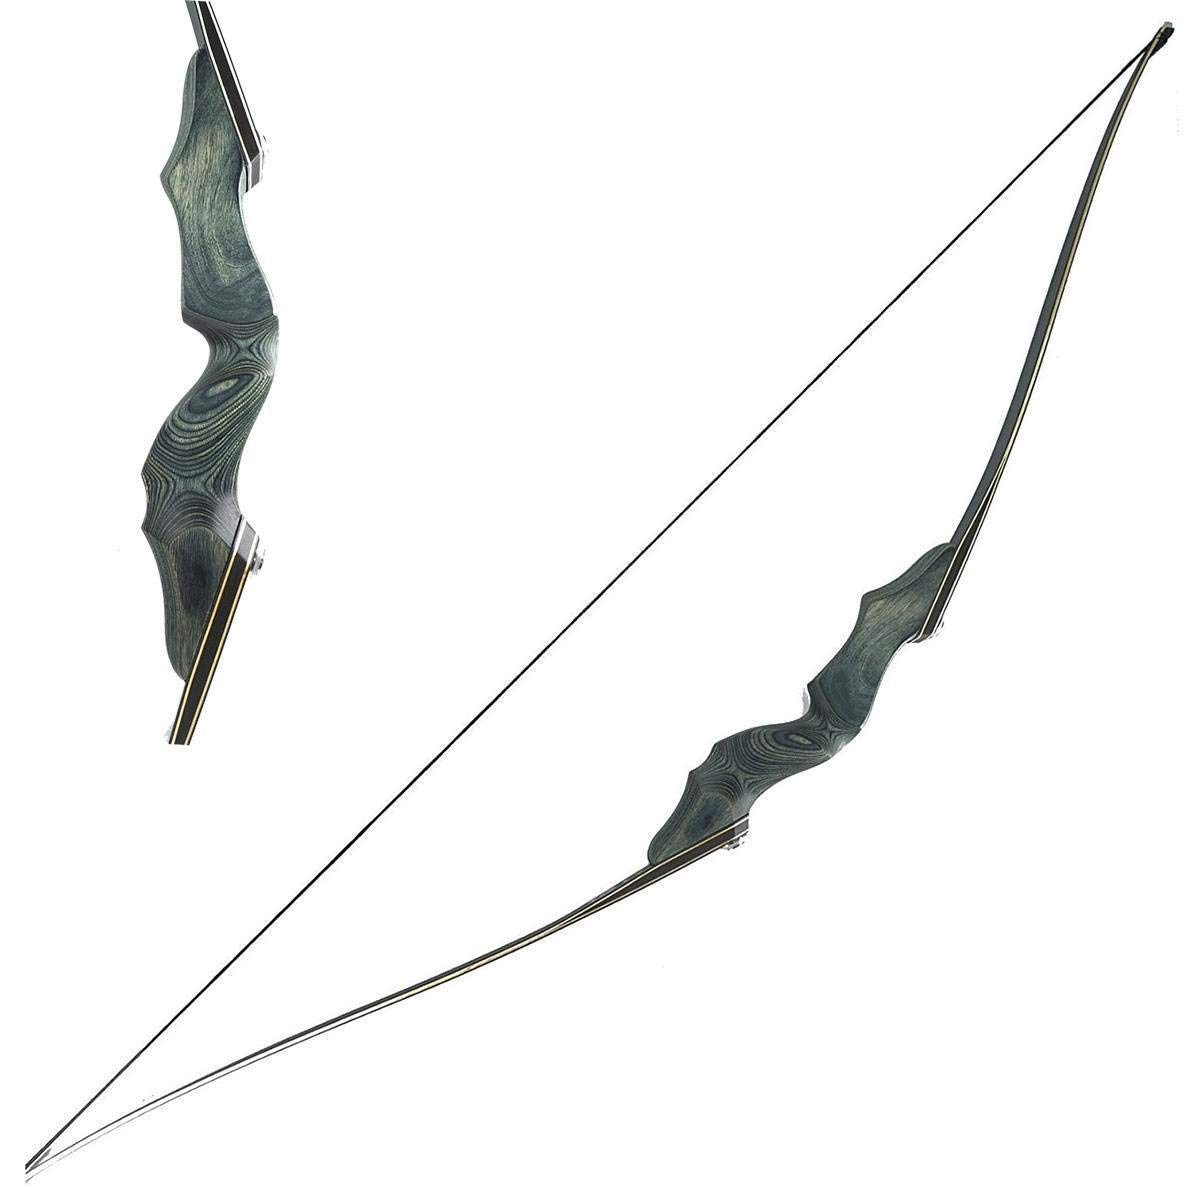 Obert Black Hunter Archery Takedown Recurve Bow American Longbow Adult Right Hand Hunting Wood Bow 60'',30-60lbs Target Practice